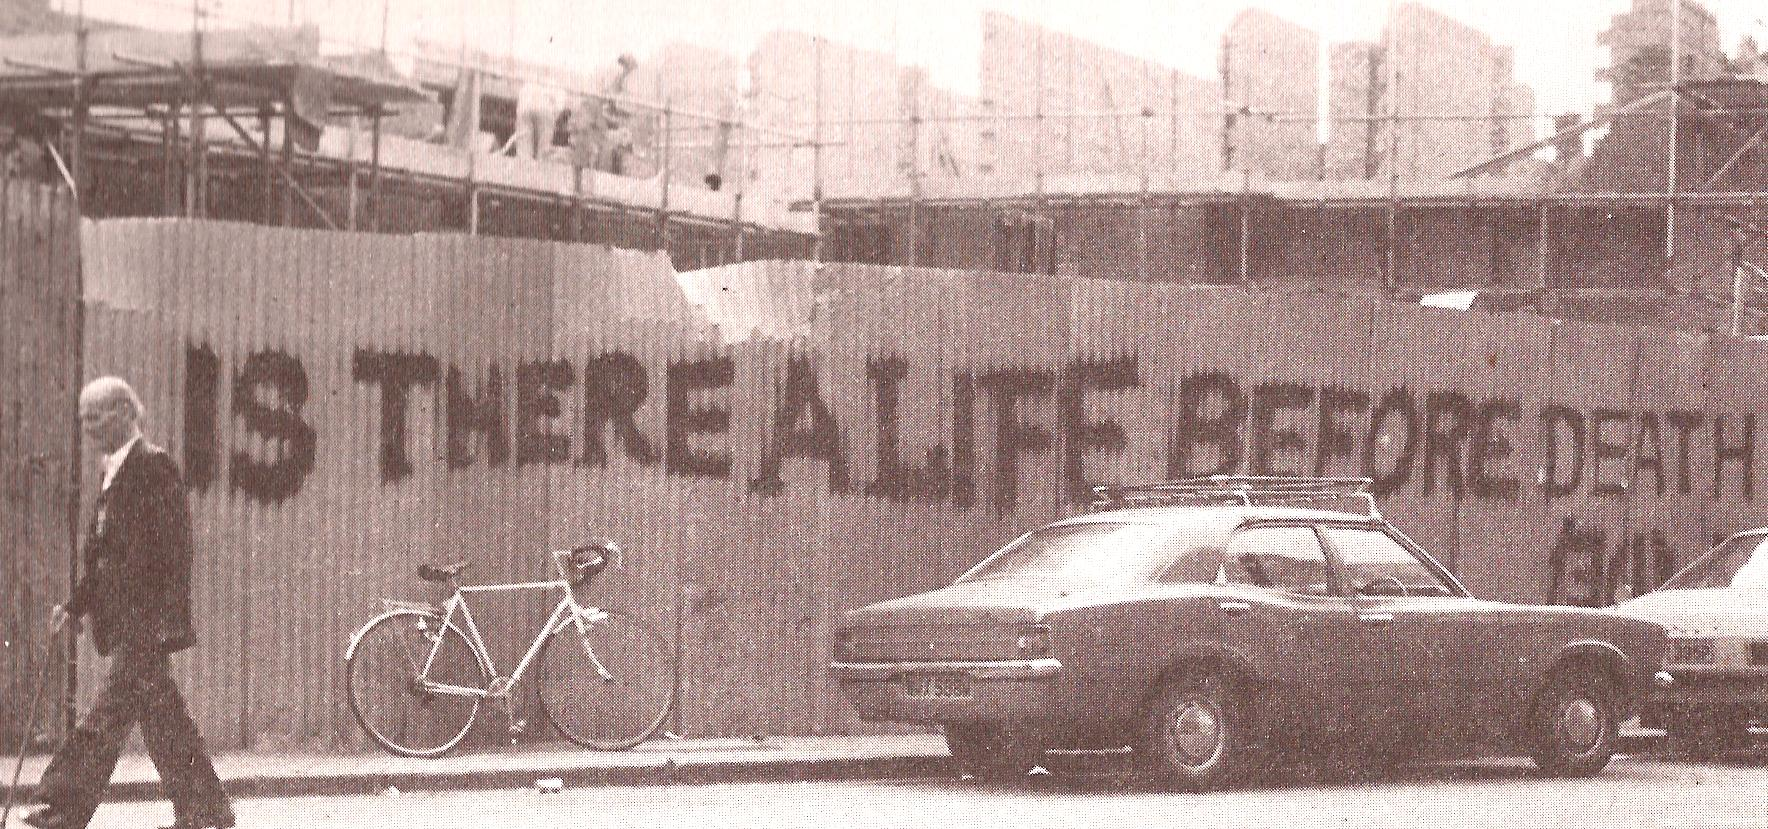 https://dialectical-delinquents.com/wp-content/uploads/2013/01/graffiti-life-before-death.jpg